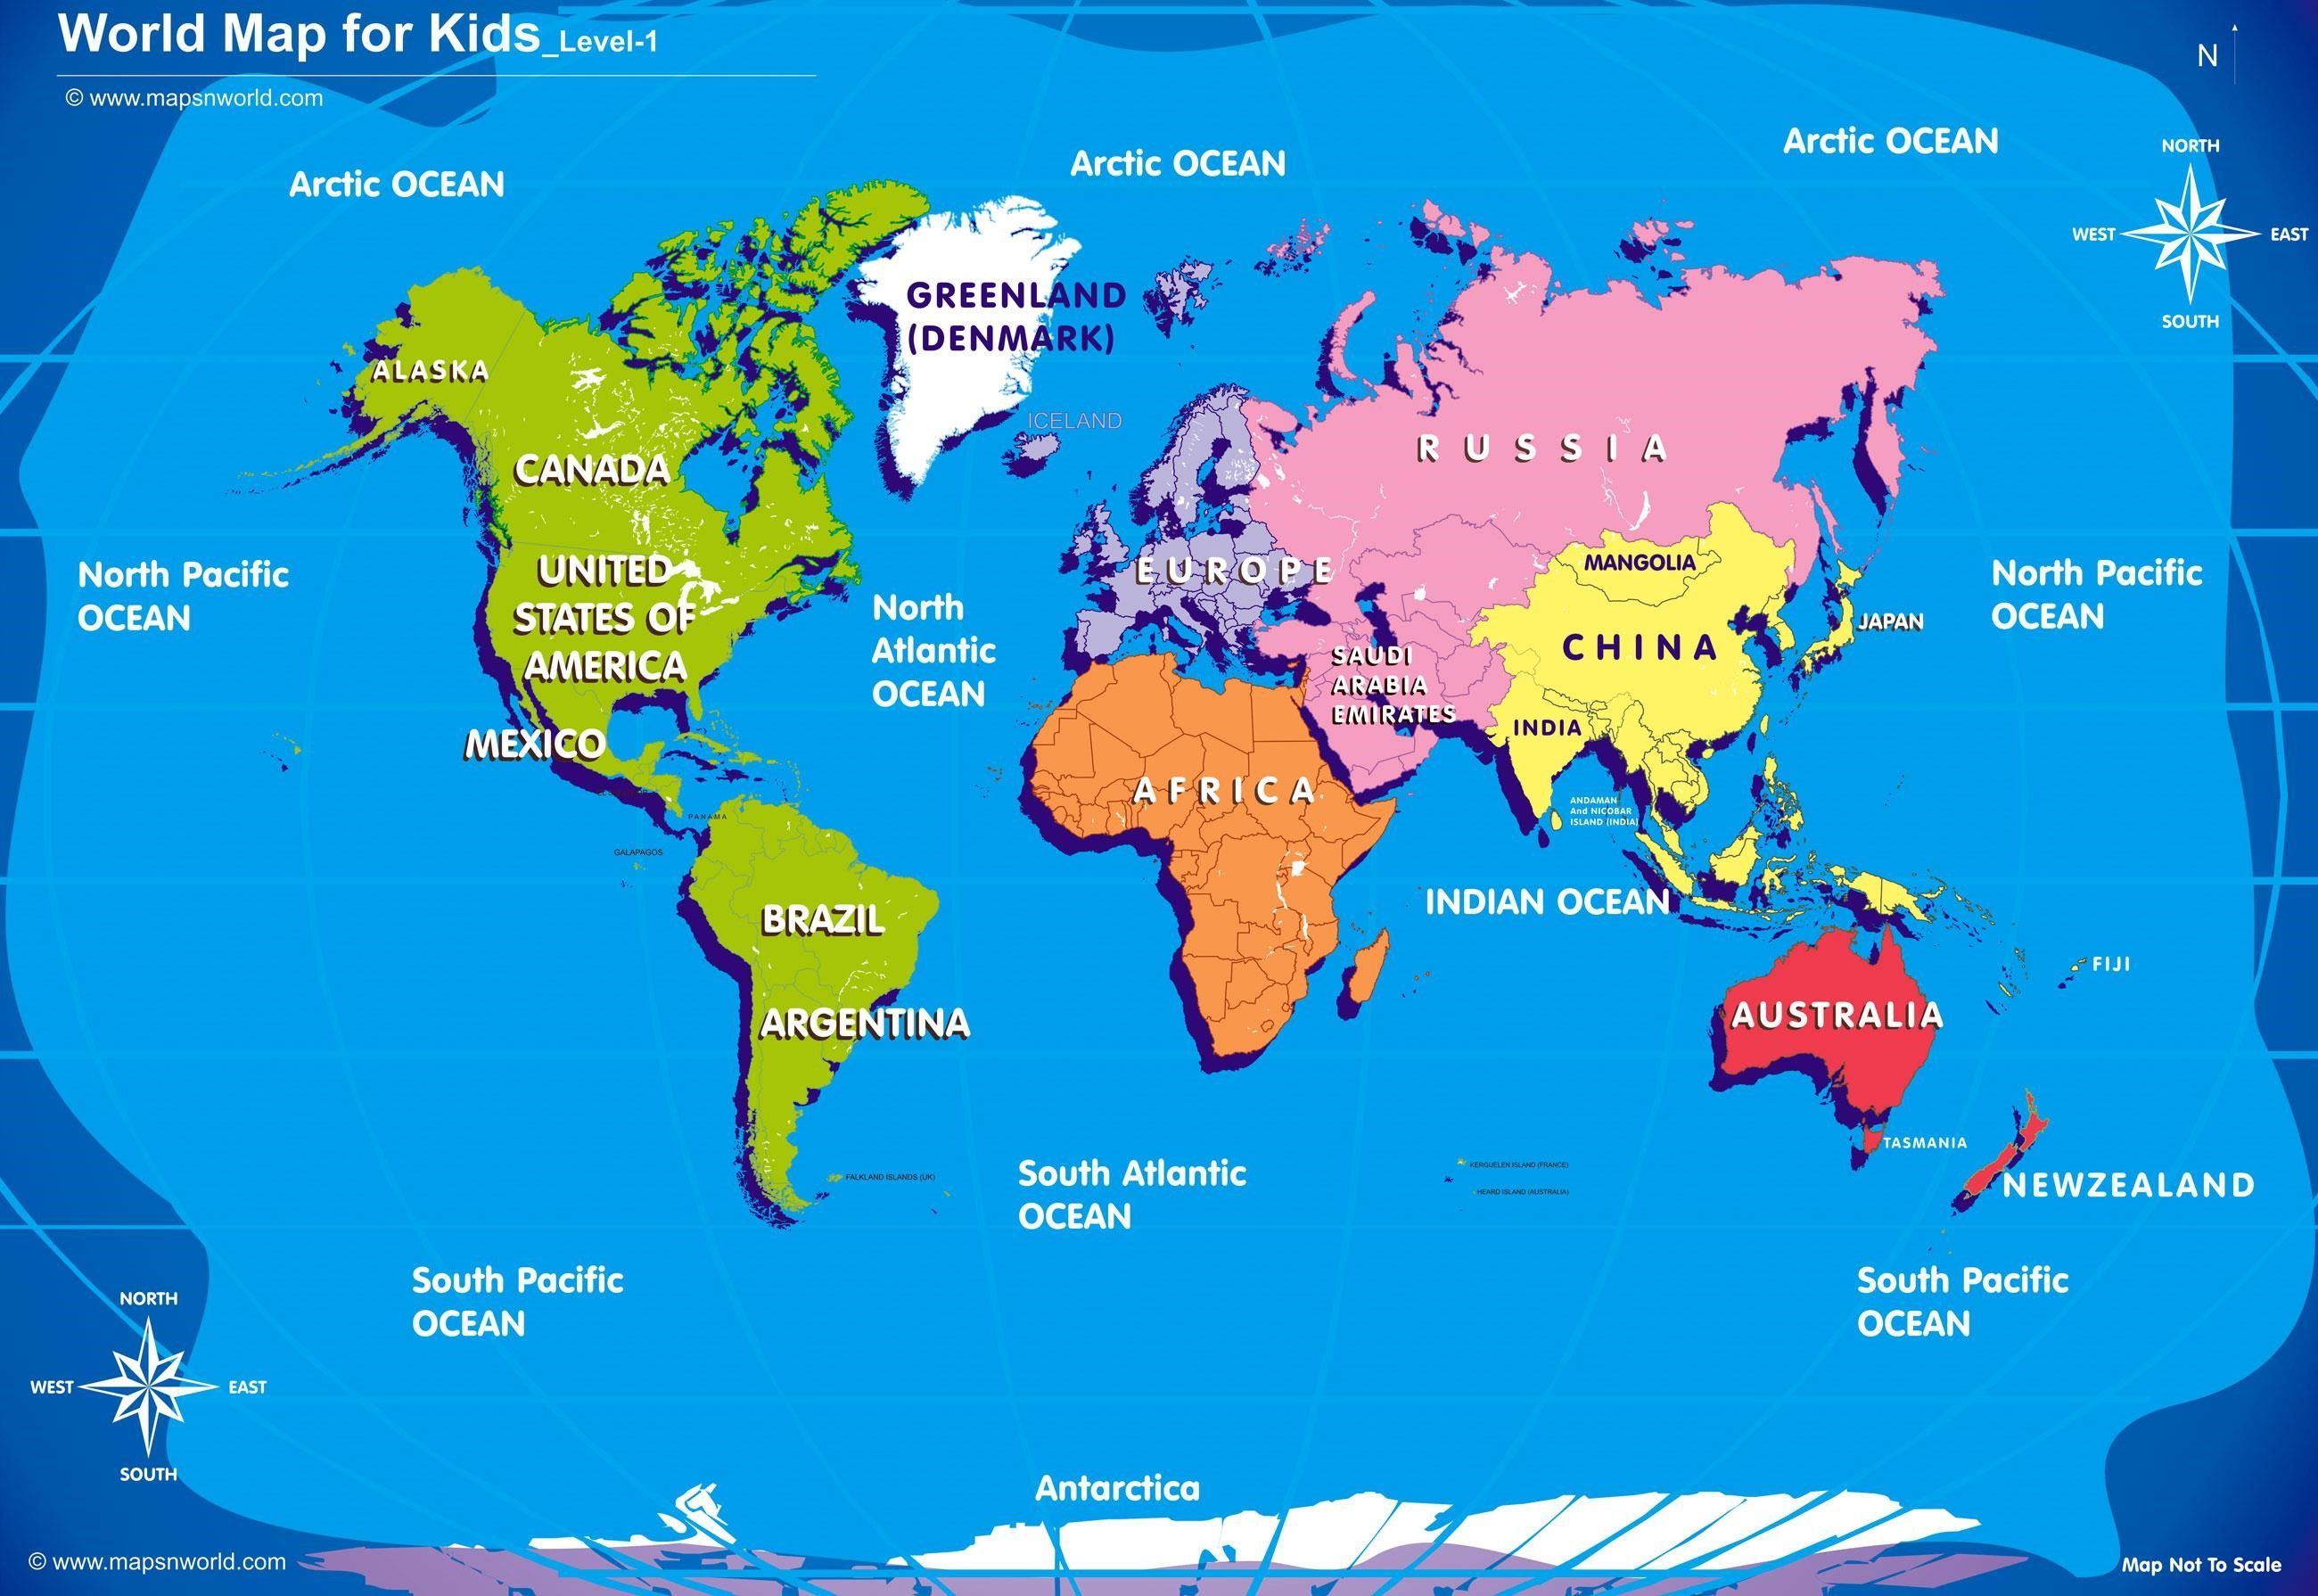 Remarkable World Map For Kids With Countries S